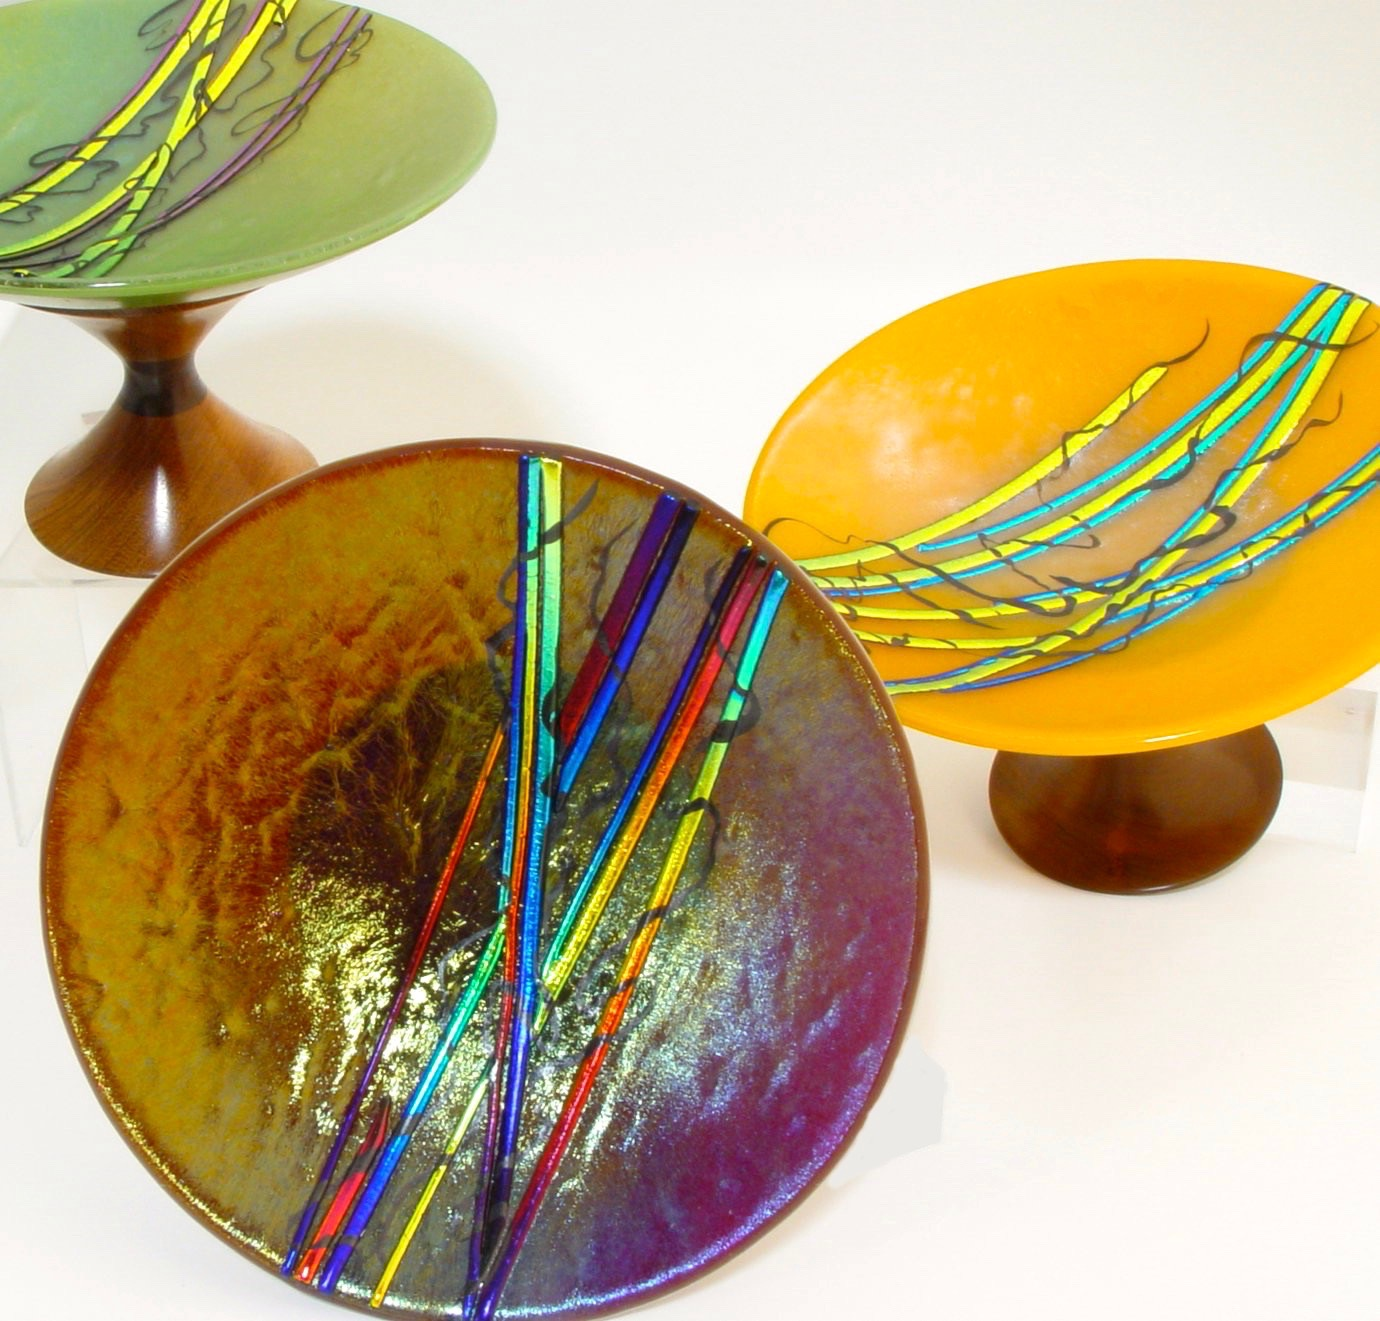 Kathleen Hallamore-Best A series of Fused bowls on turned pedistals by Joe Donohue